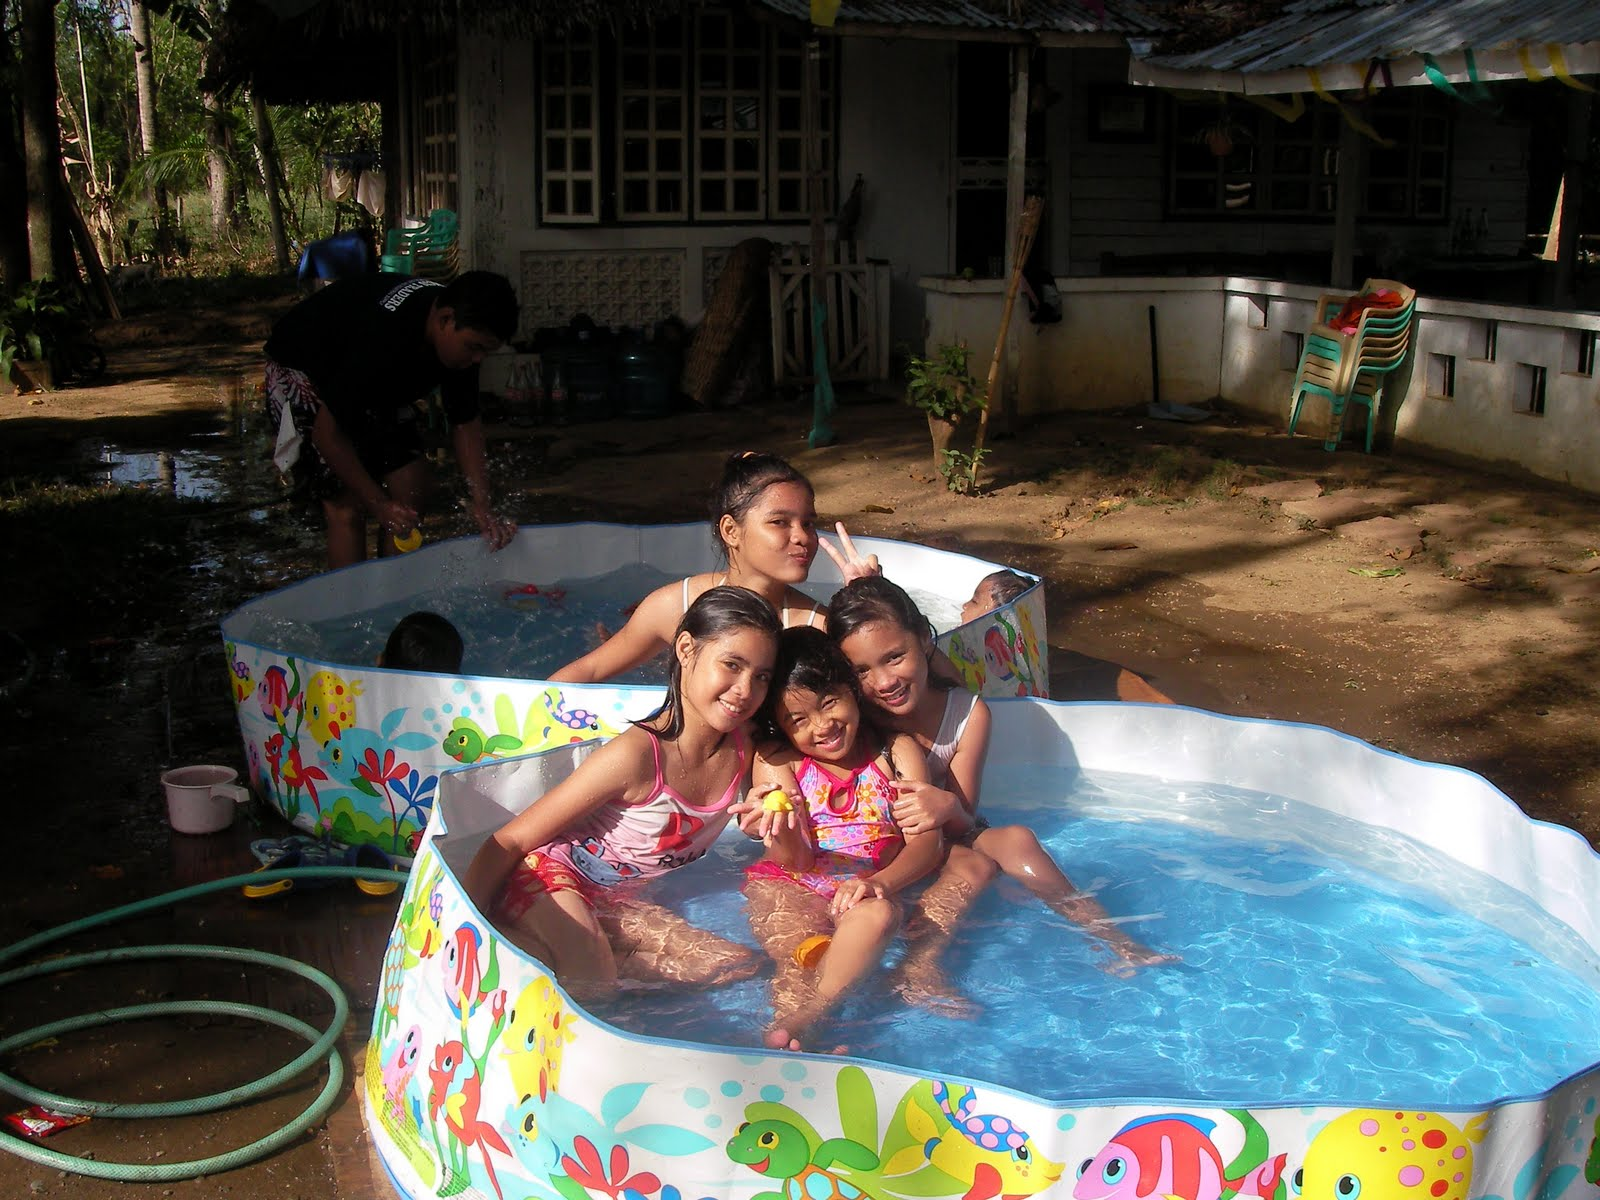 Enjoying the Kiddie Pool | Words From My Heart...